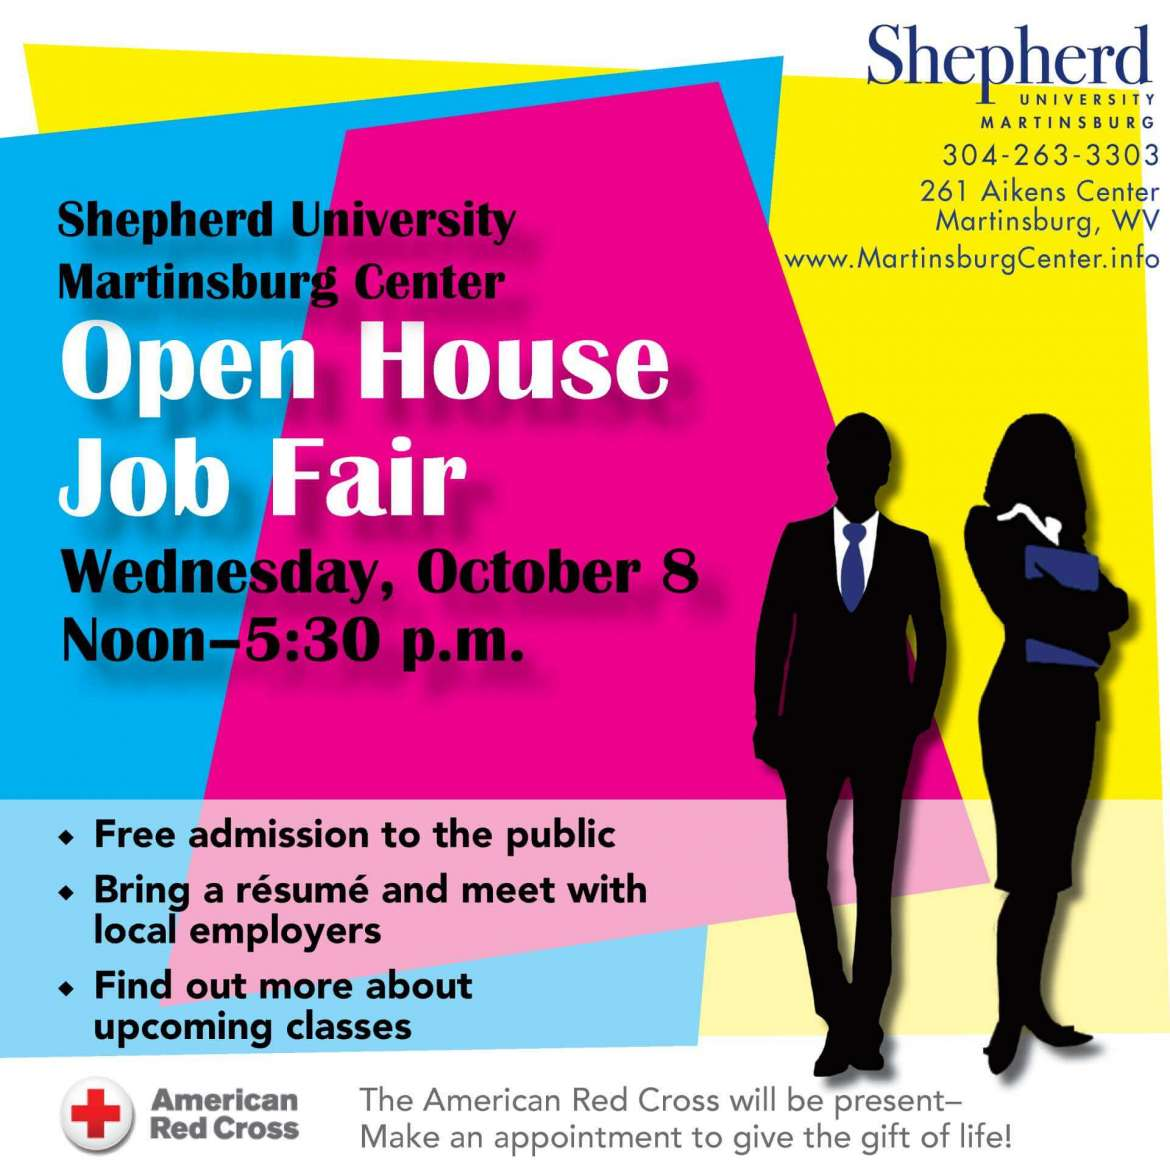 Martinsburg Center will host a job fair and open house Wednesday, October 8 from noon-5 p.m.